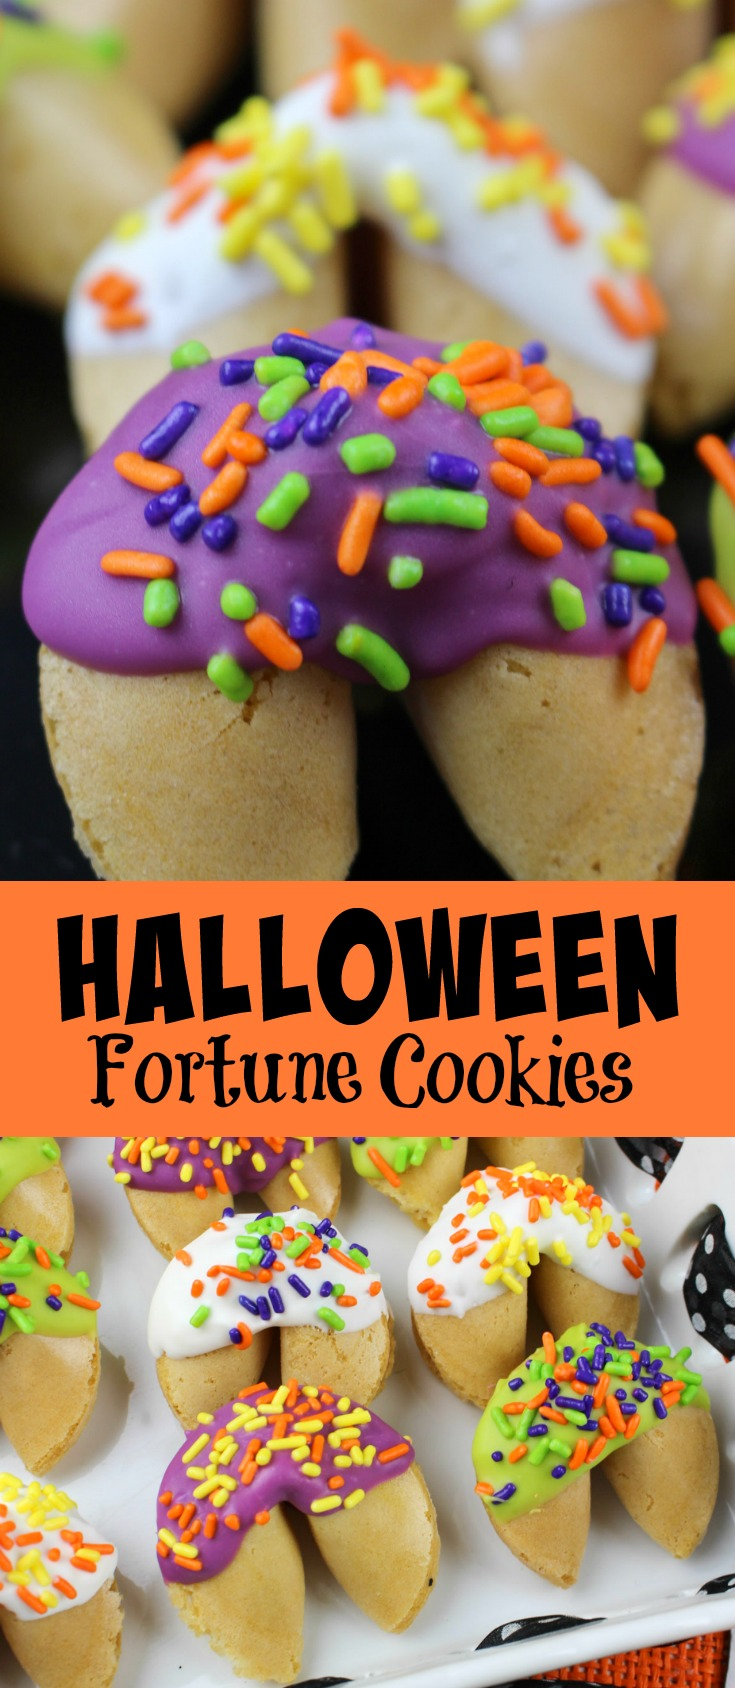 Halloween Fortune Cookies - ideal for Halloween parties, fall festivals of just fun treats for the kids at home!